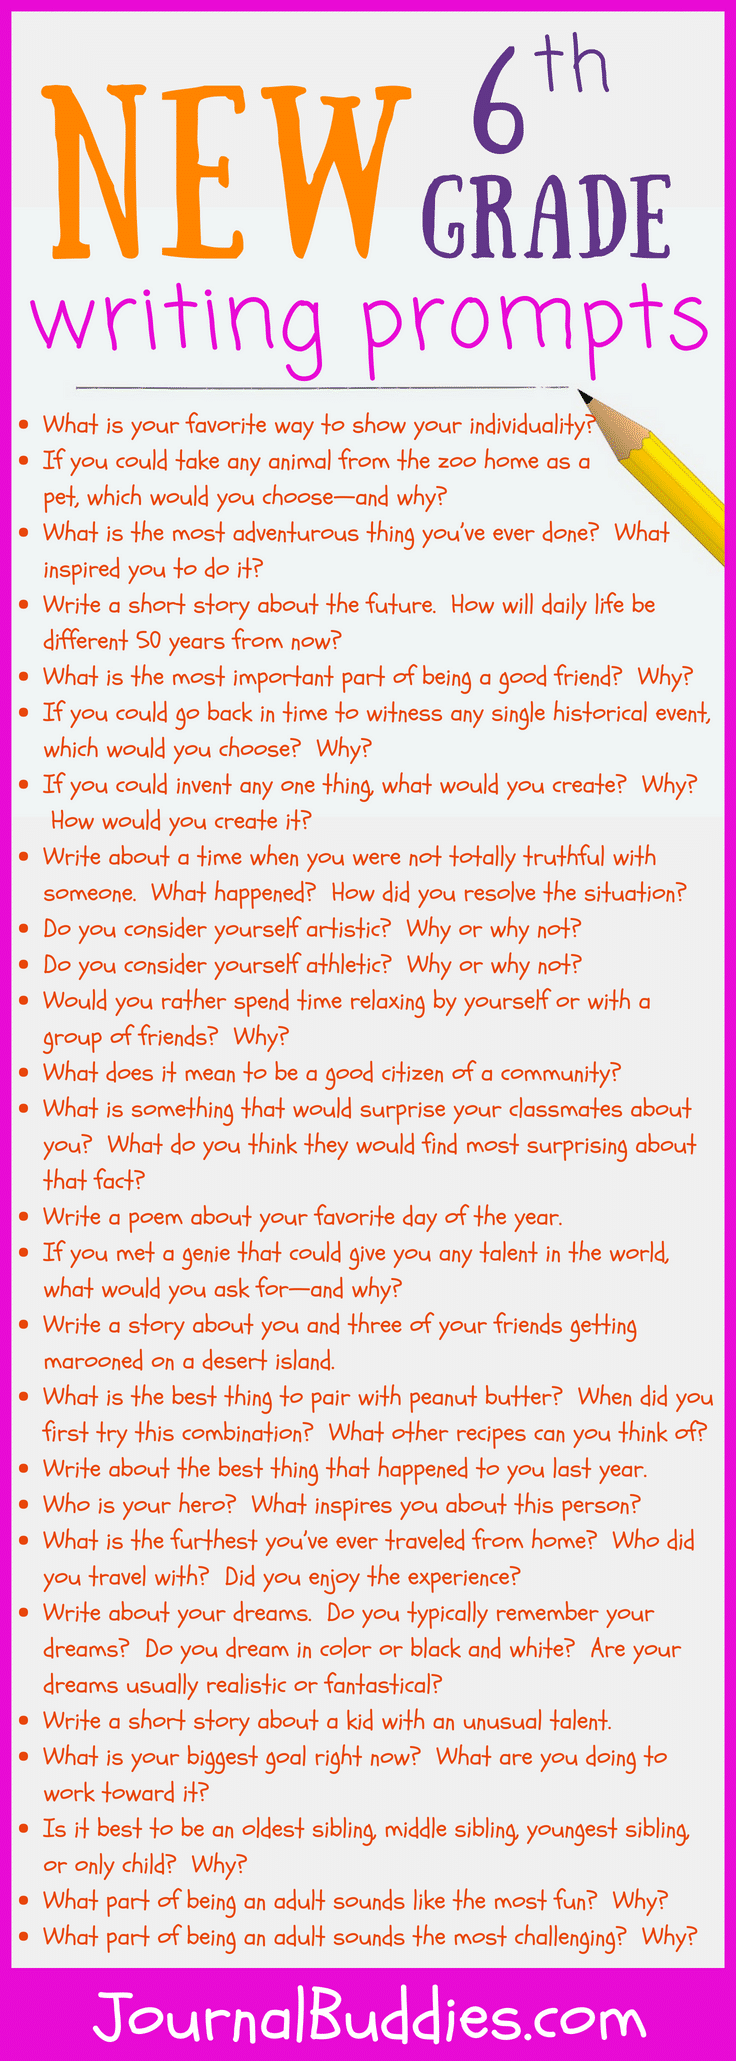 Use These 6th Grade Writing Prompts To Help Your Students Form Opinions And Explore Their Ideas